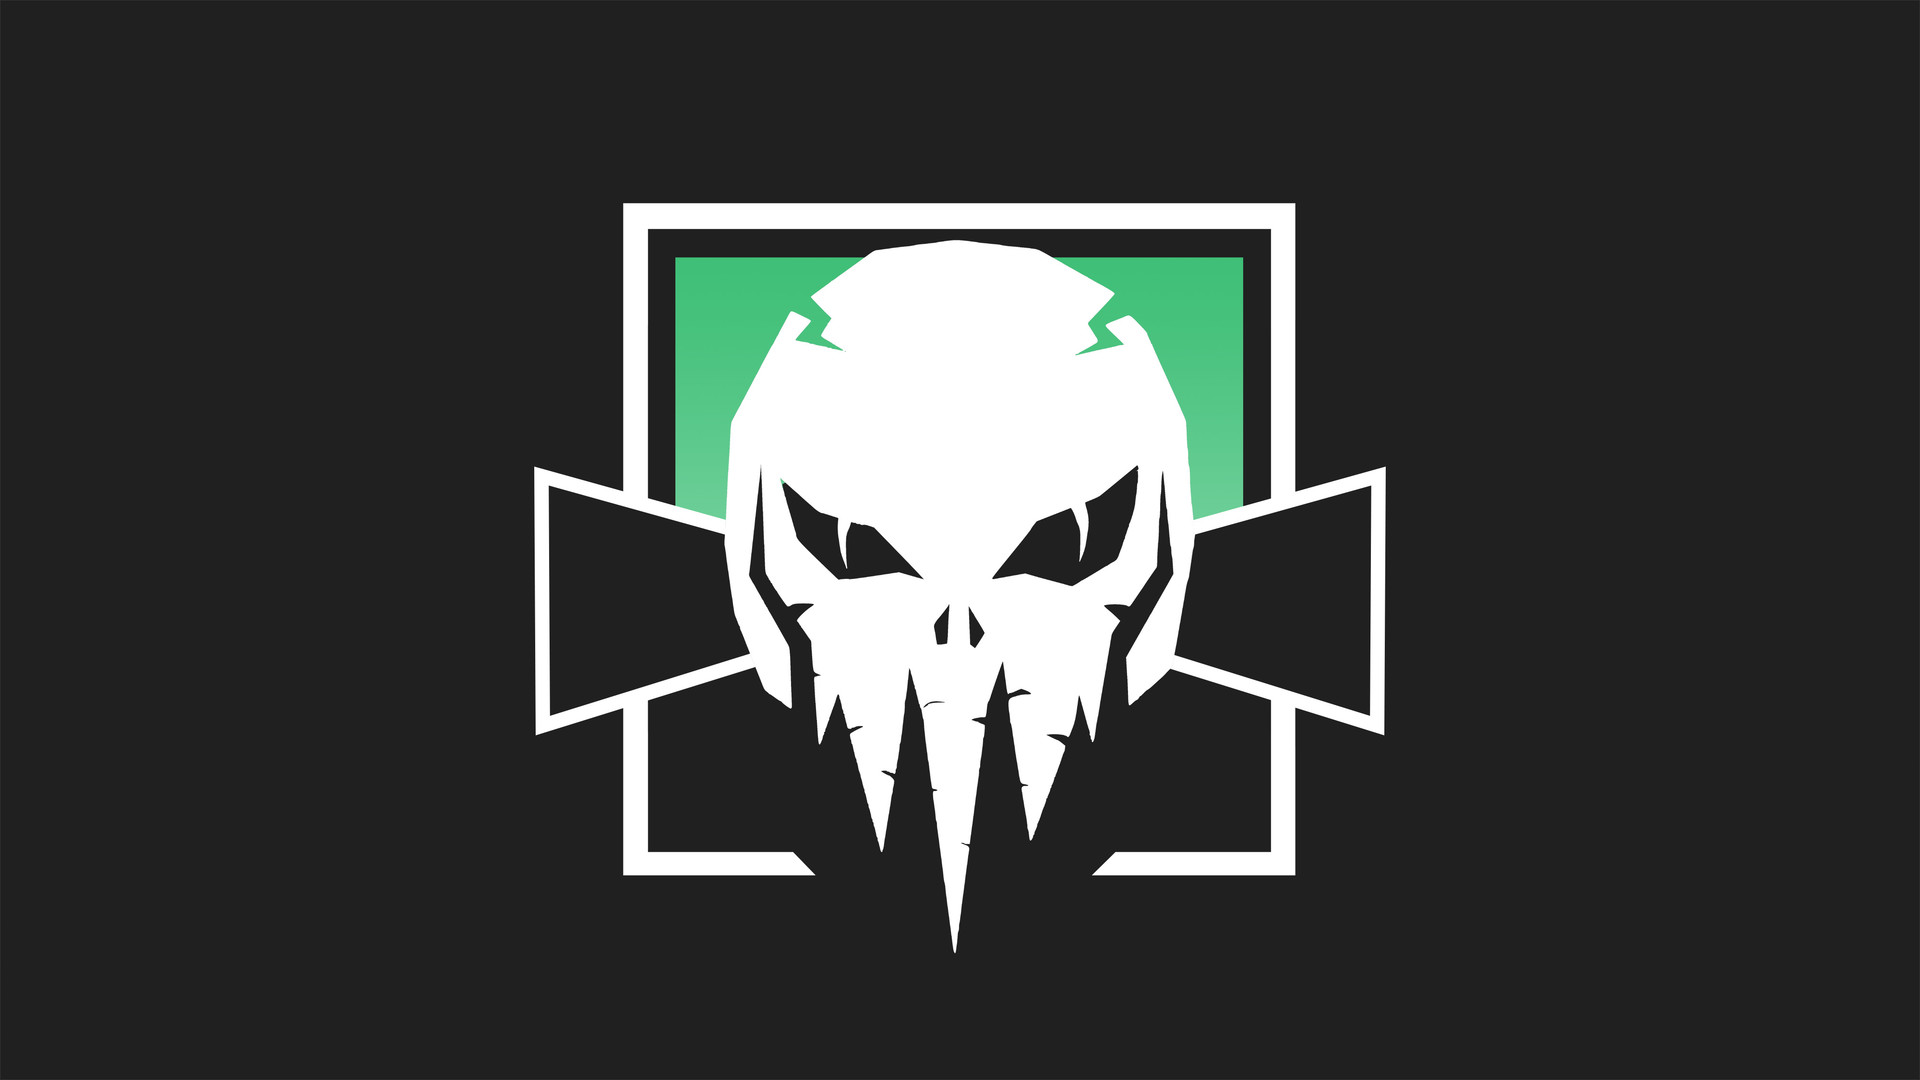 Smoke Icon R6: I Made Mutes Icon Look More Like Mute